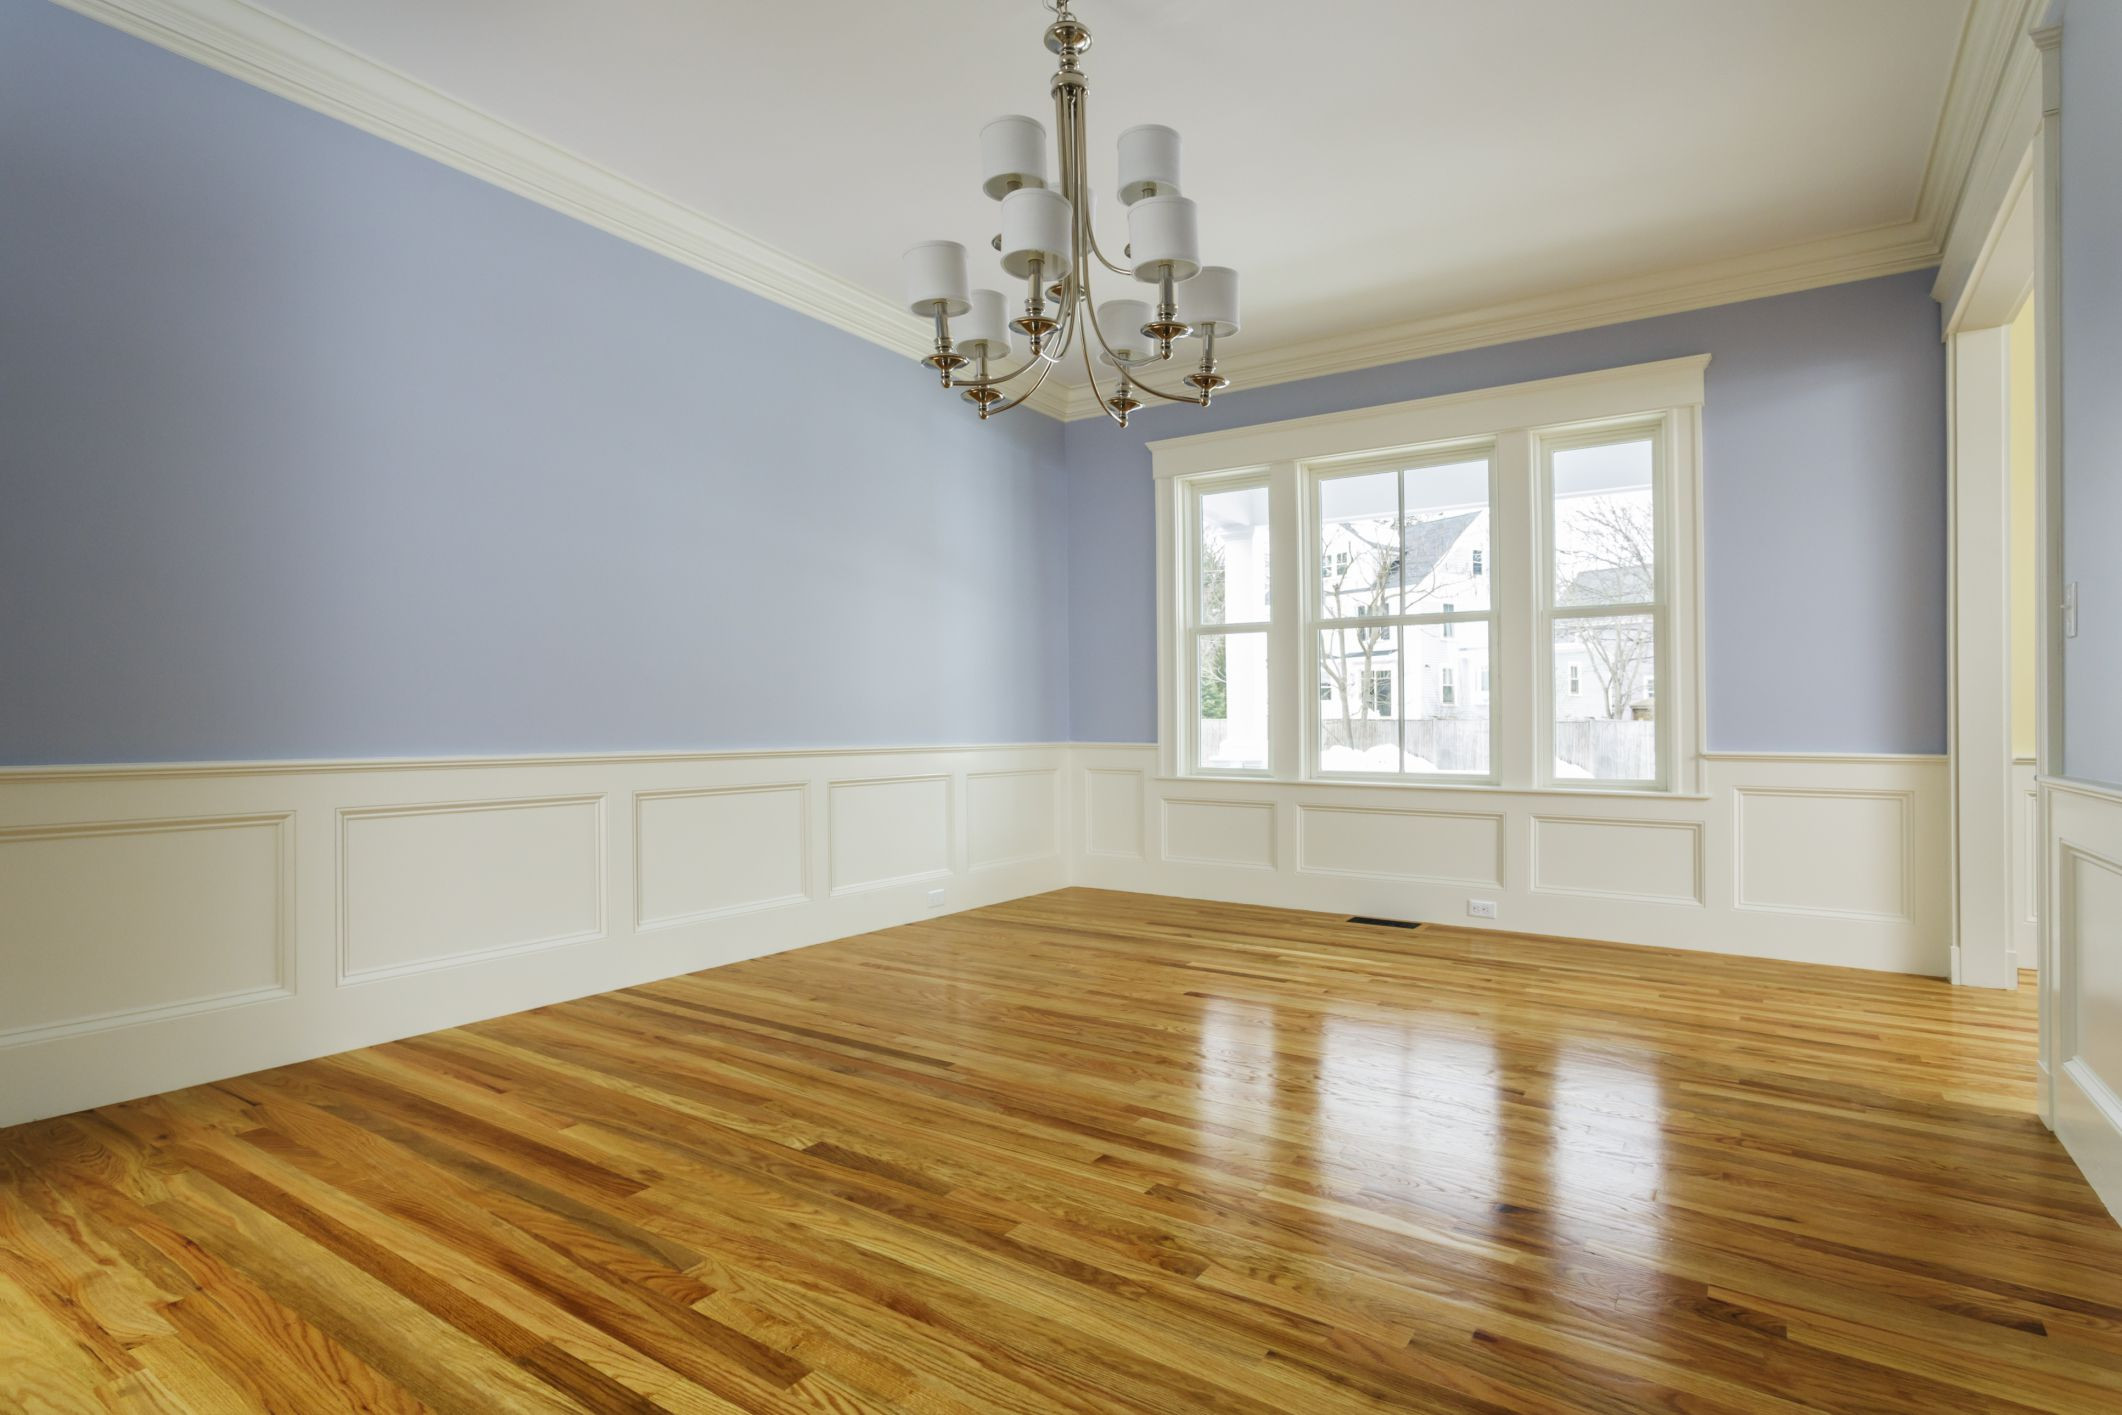 manufactured hardwood floor cleaner of how to make hardwood floors shiny in 168686572 56a4e87c3df78cf7728544a2